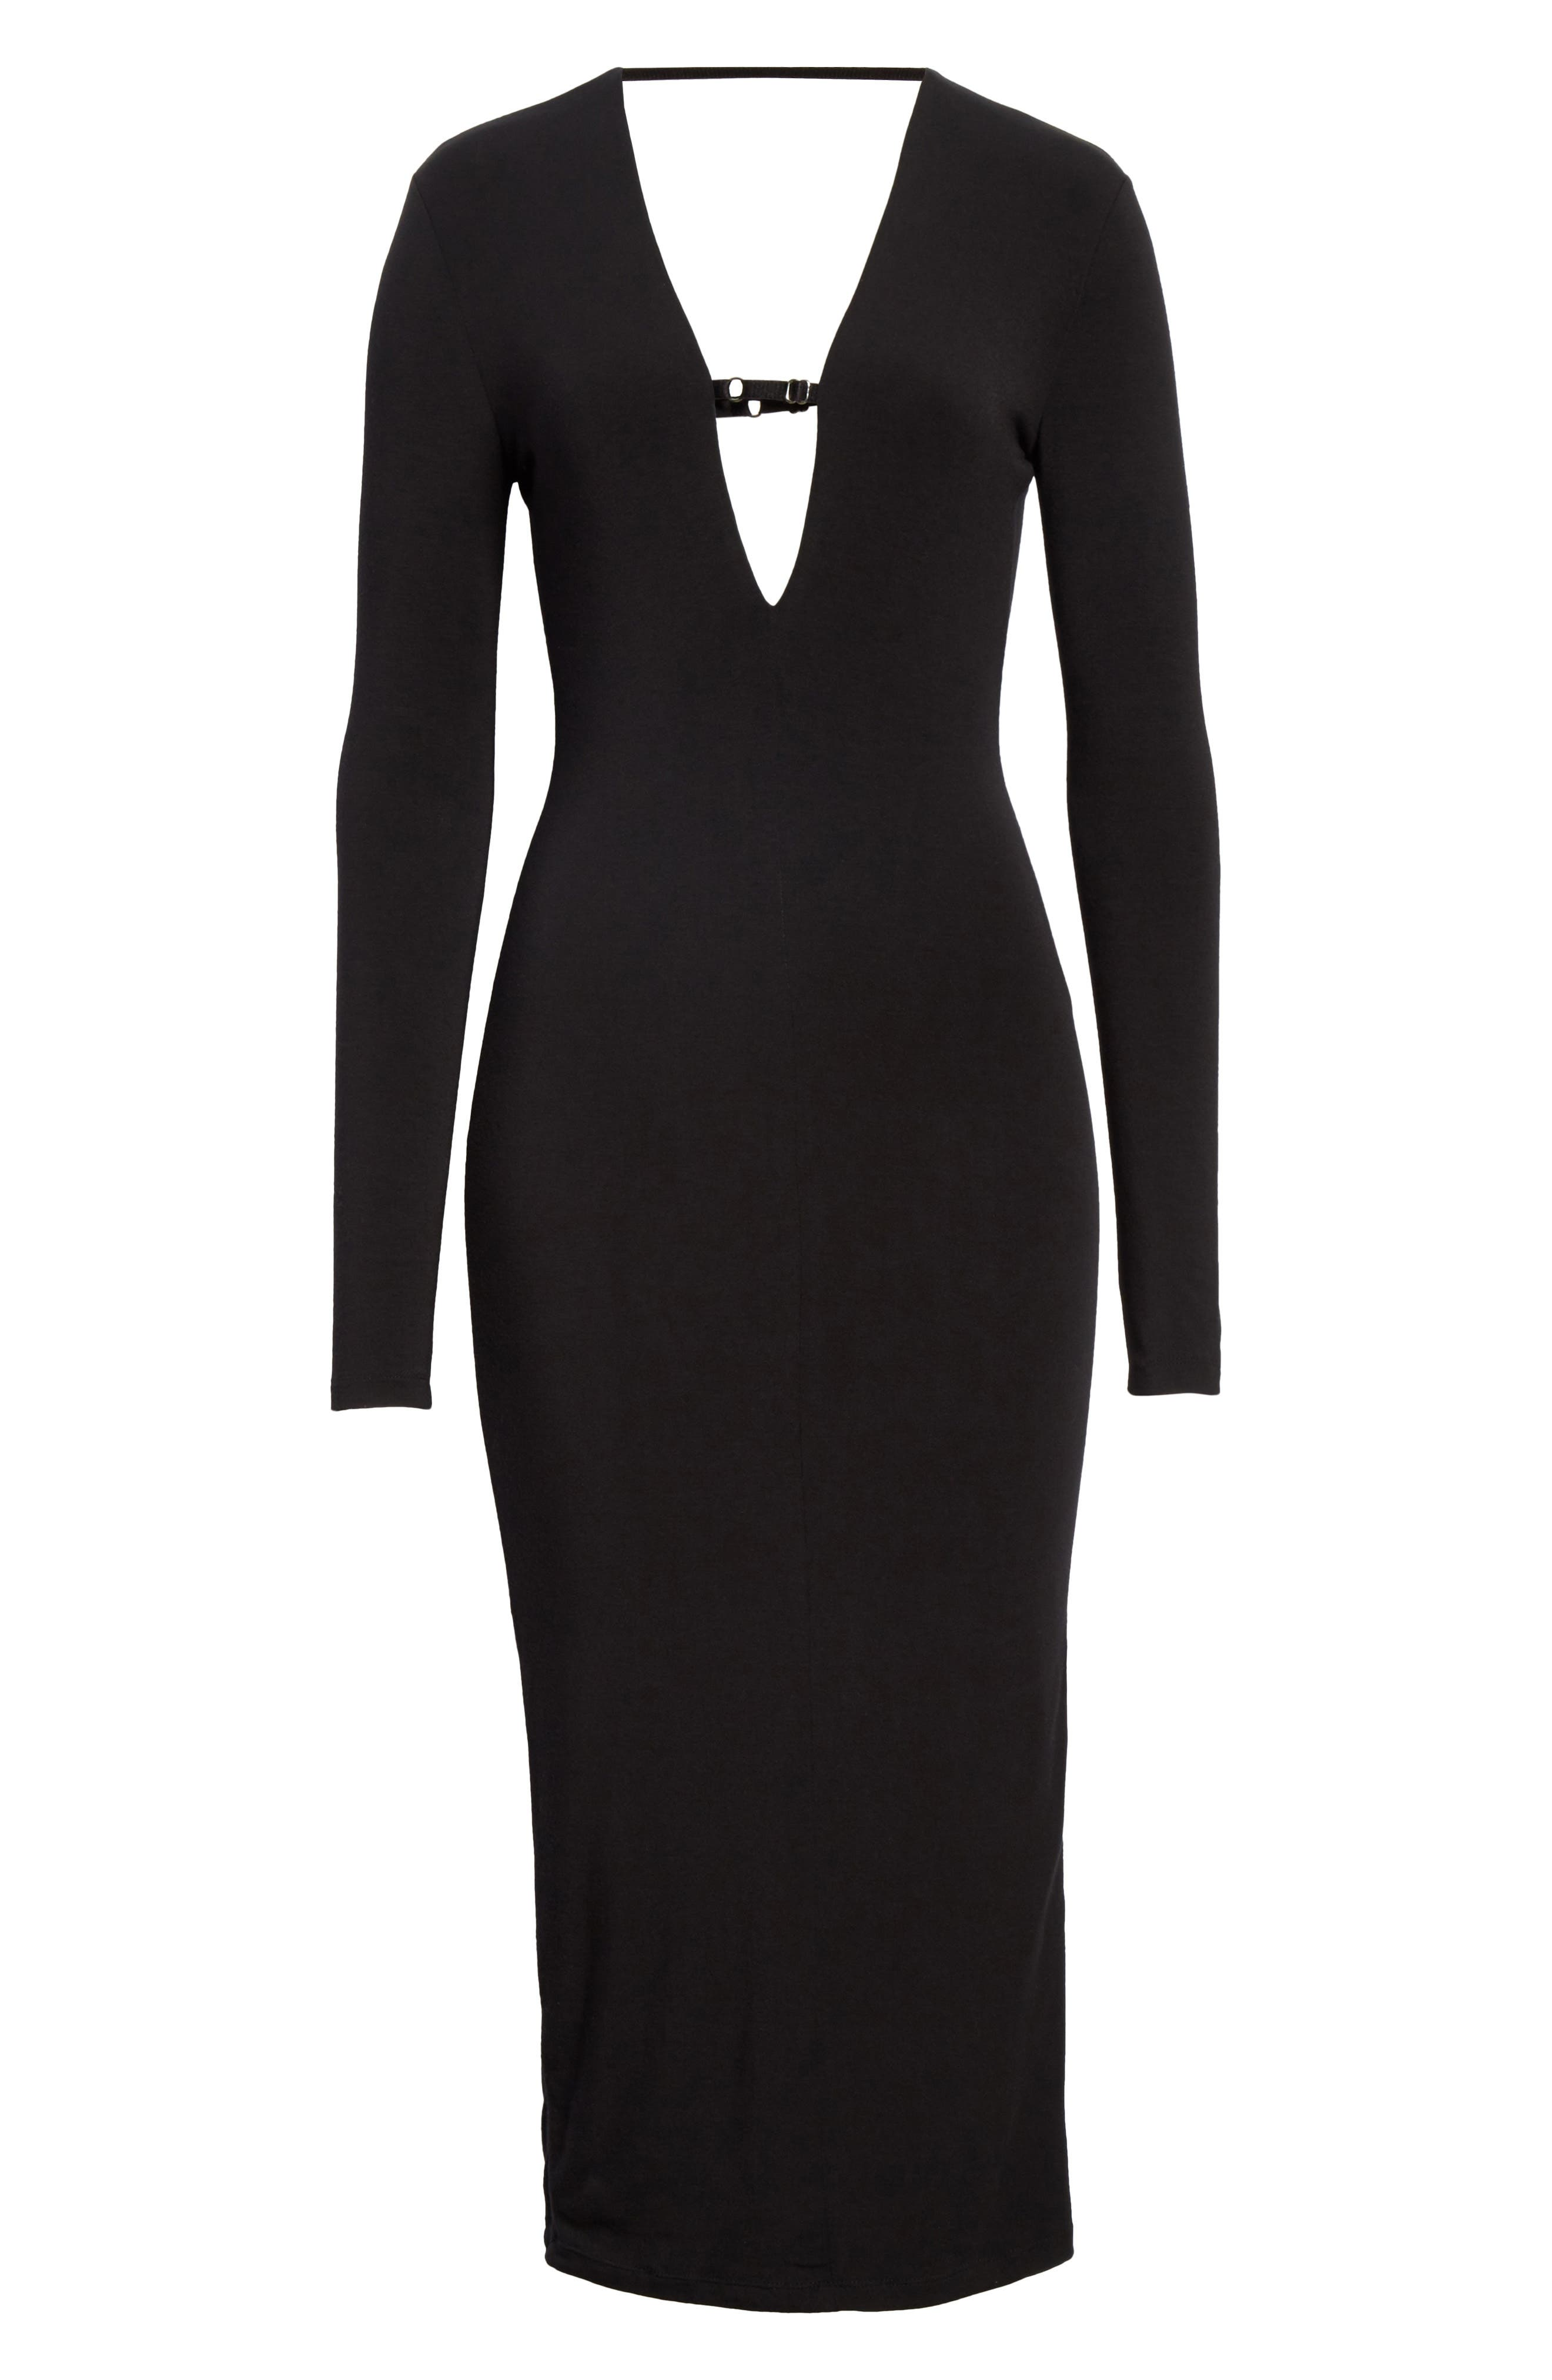 T by Alexander Wang Keyhole Neck Body-Con Dress,                             Alternate thumbnail 6, color,                             001